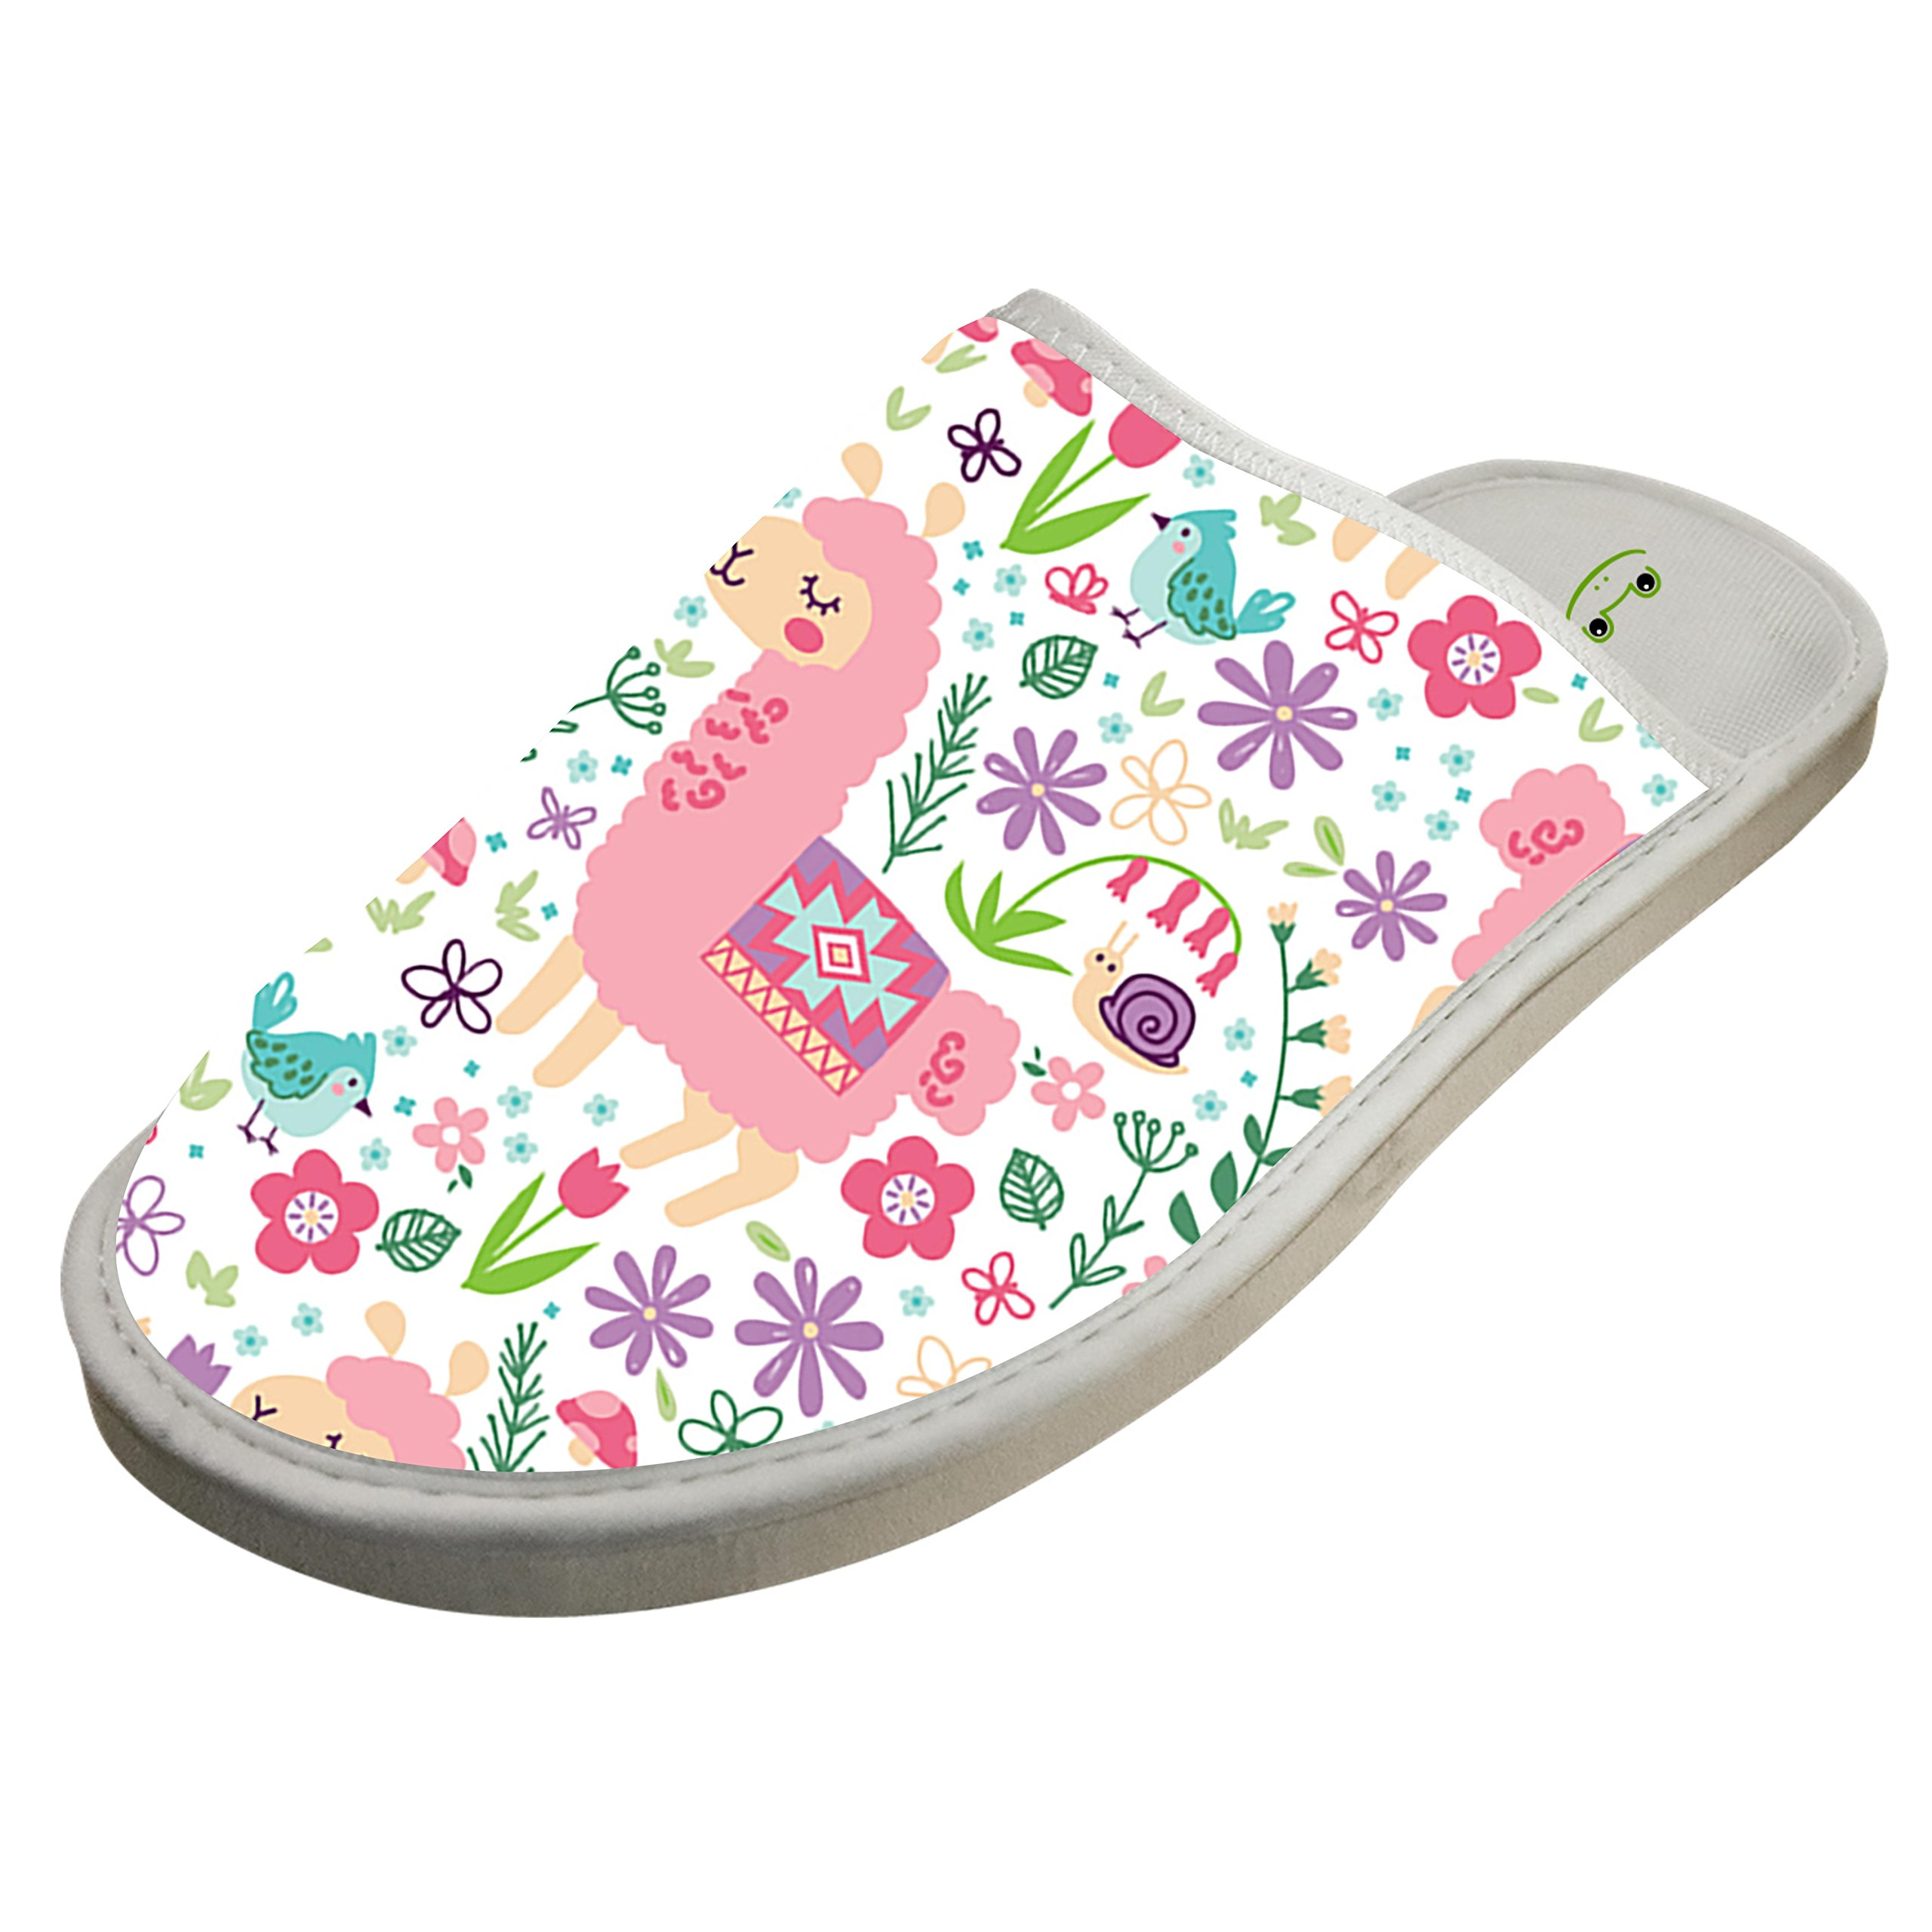 KOUY Summer Llama Closed Toe Cotton Slippers Warm Soft Indoor Shoes Non-watertight 6 D(M) US